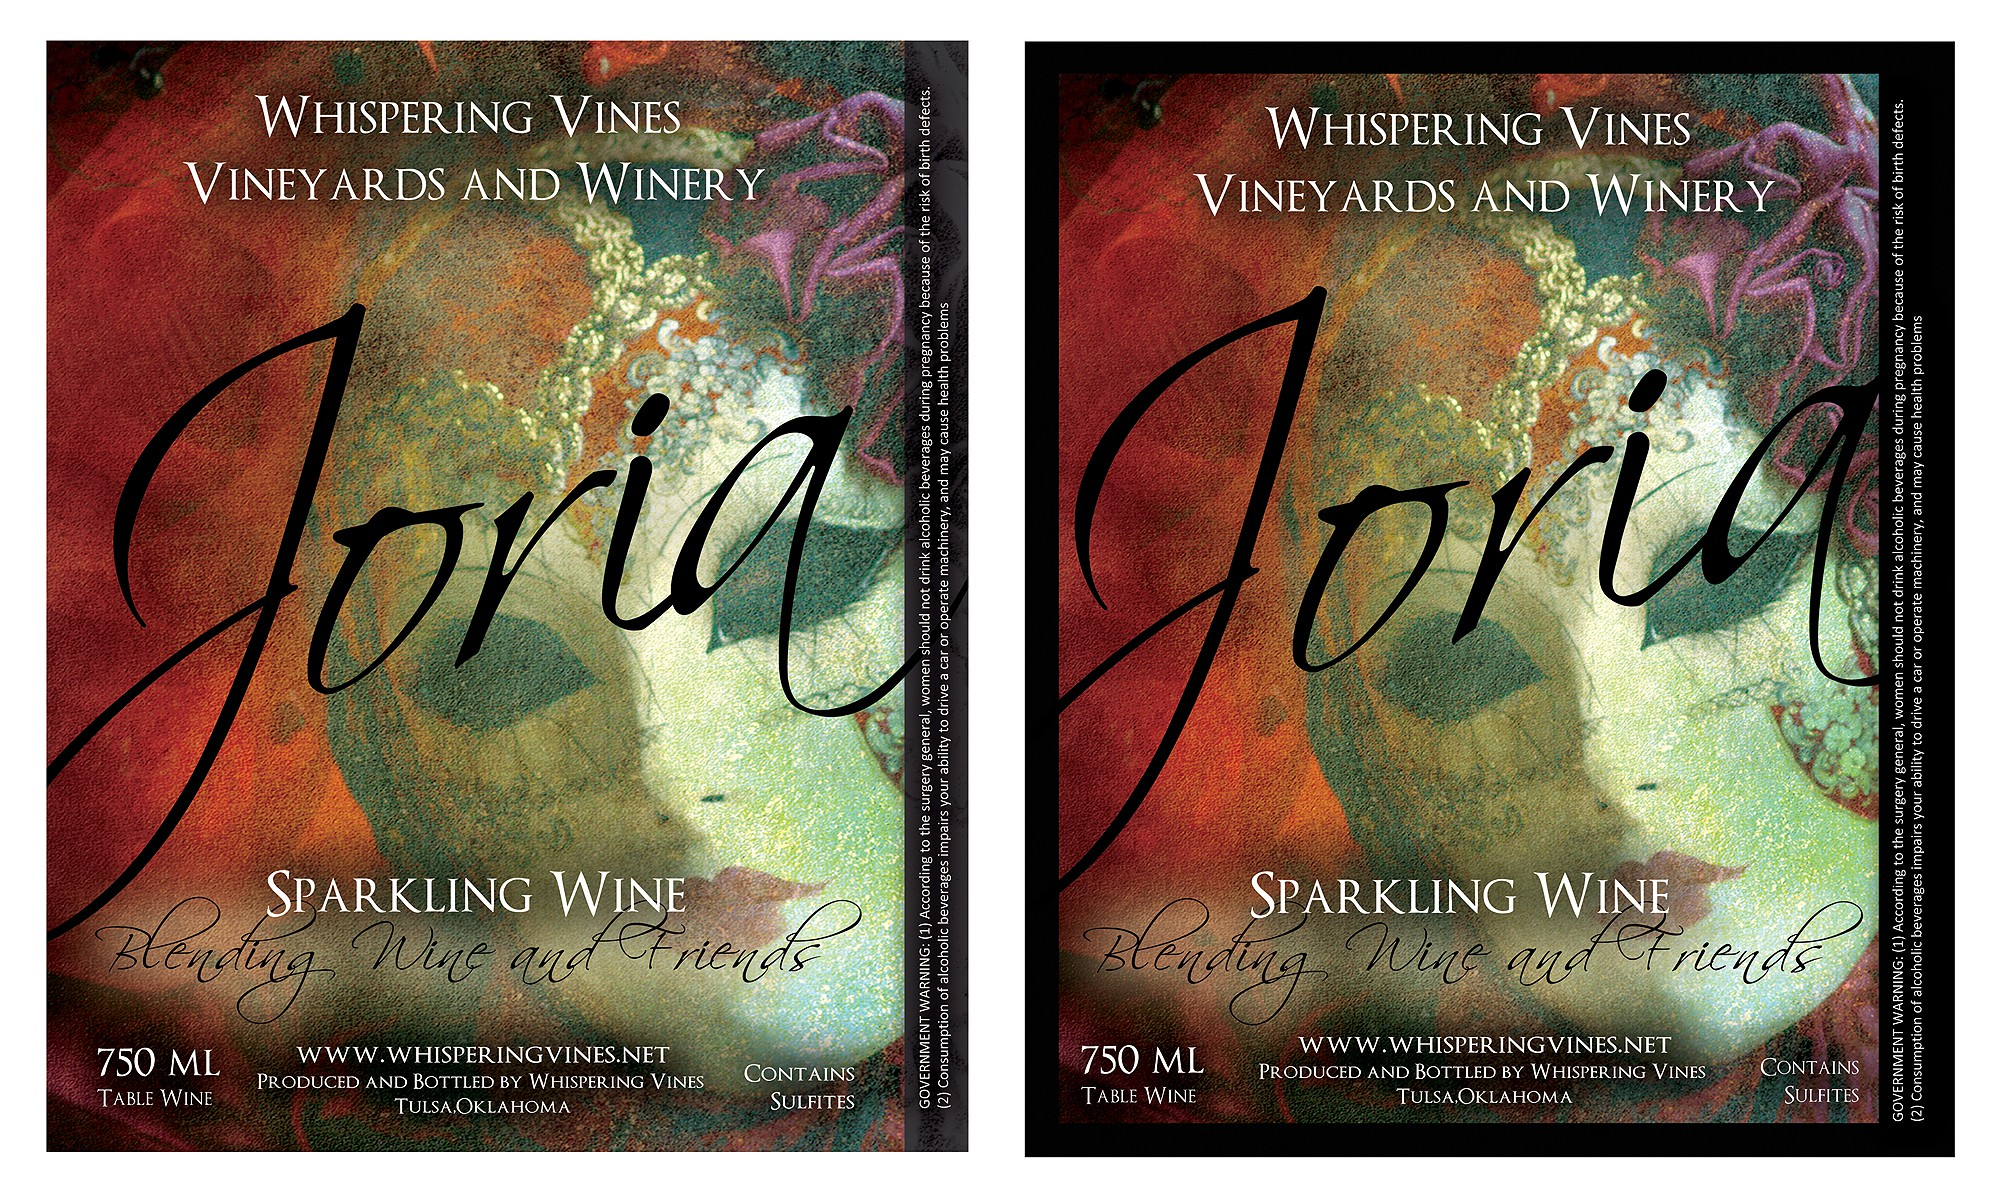 Create the next print or packaging design for Whispering Vines Vineyards and Winery